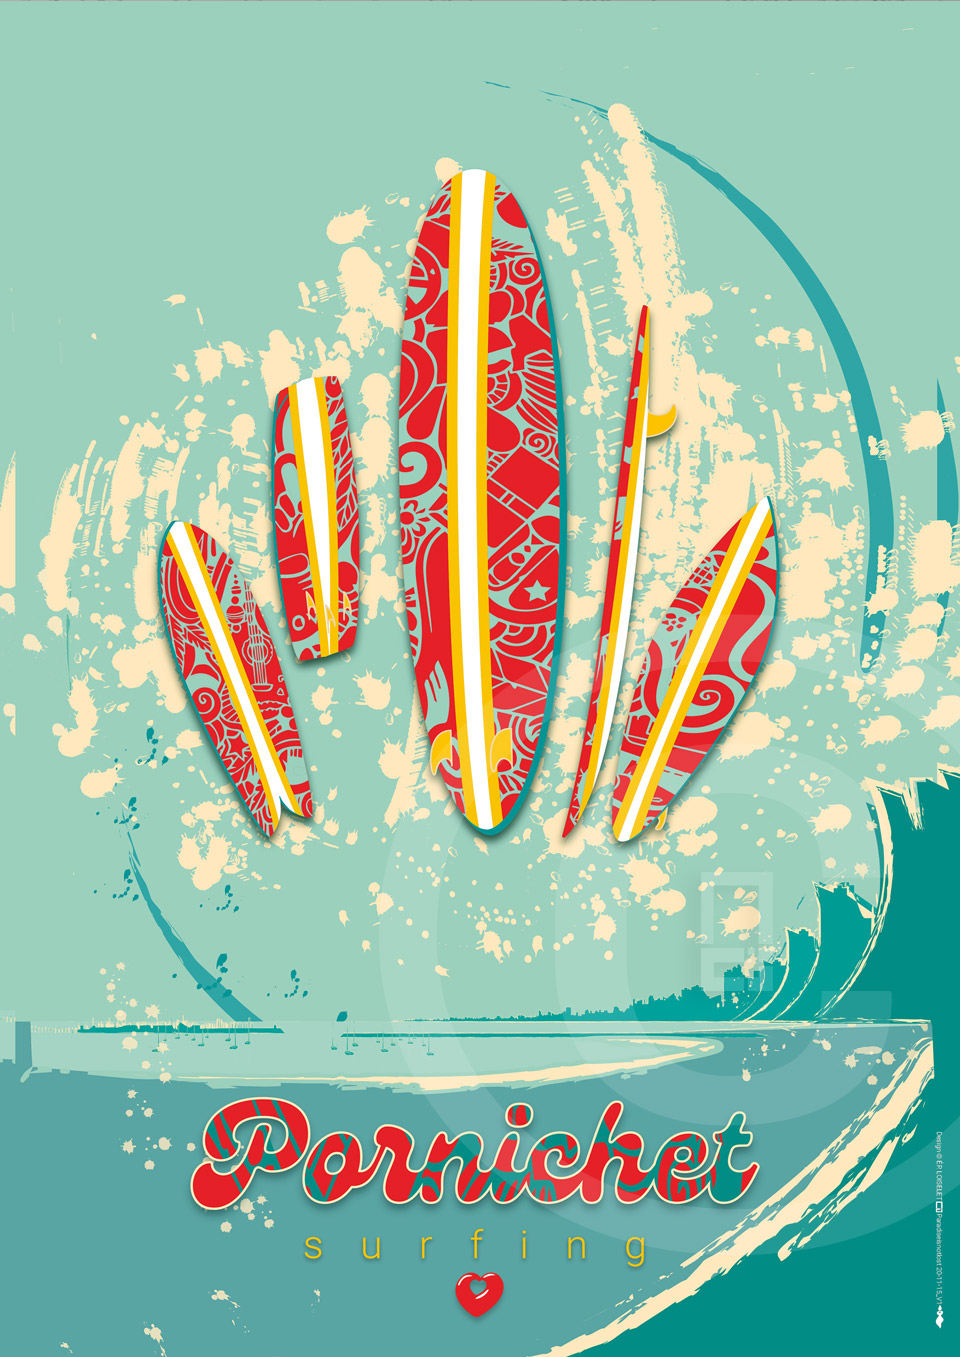 Affiche Pornichet Surfing Collection CÔTE D'AMOUR